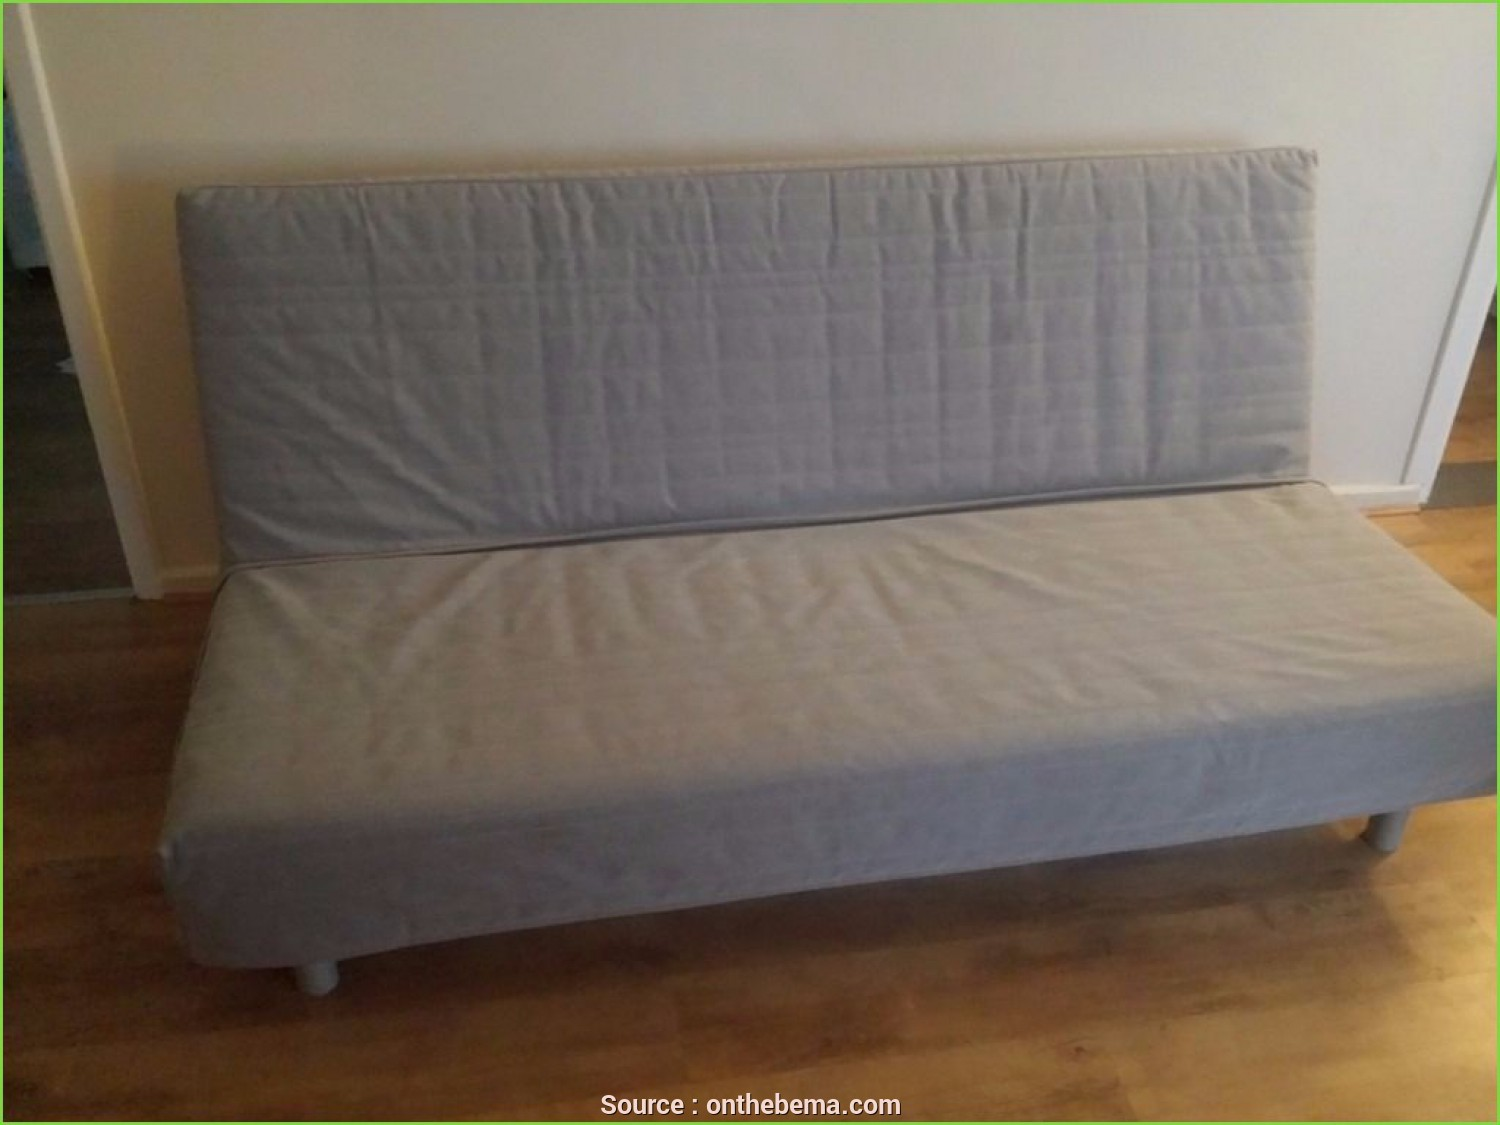 Futon Ikea, Eccellente Futon Ikea Frais Stock Beddinge Sofa, Futon Ikea Good Condition